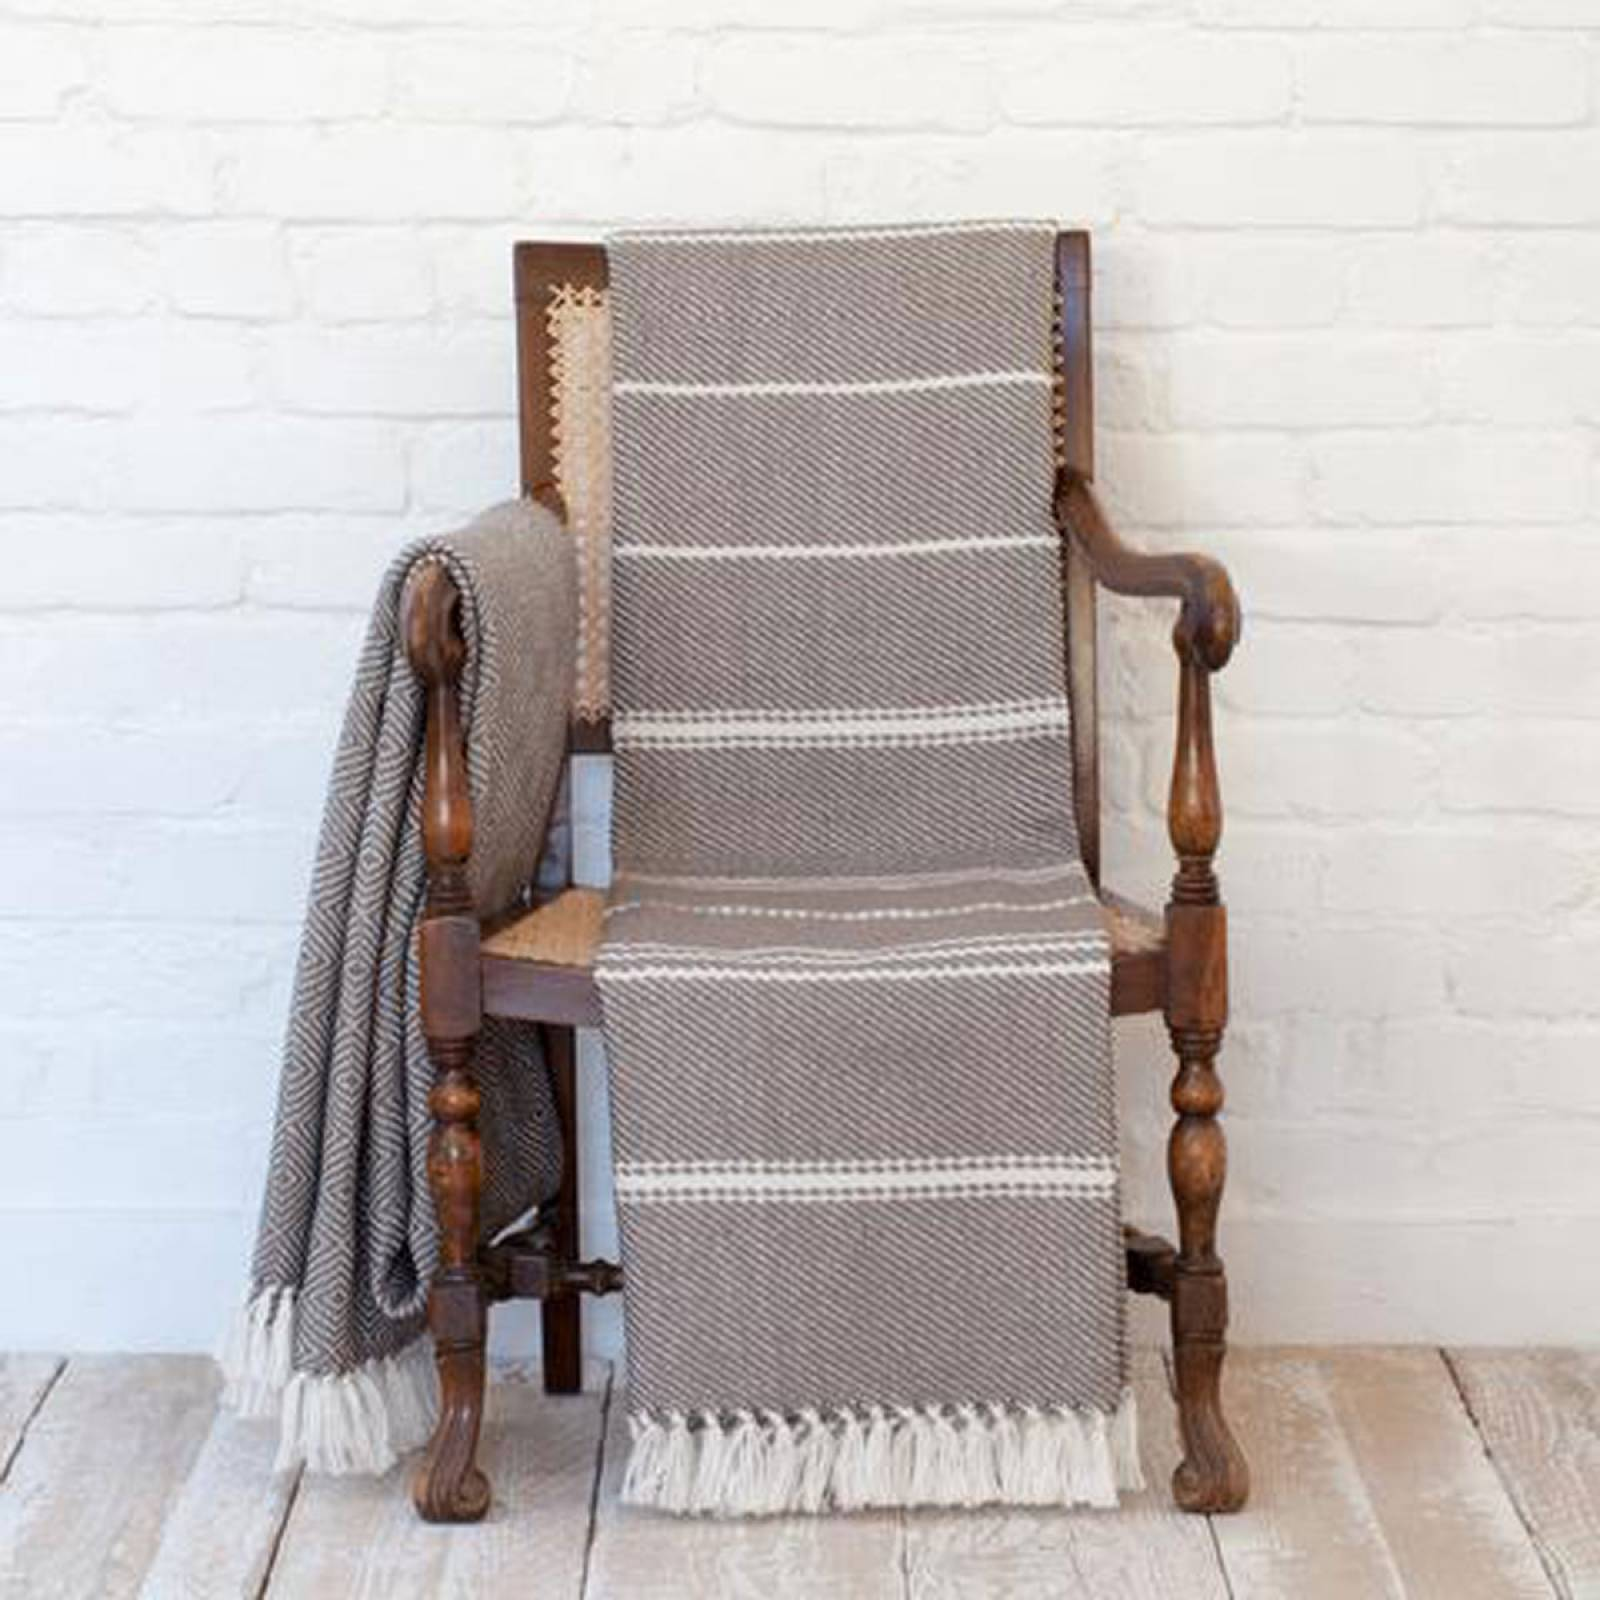 Monsoon Oxford Blanket From Recycled Bottles thumbnails